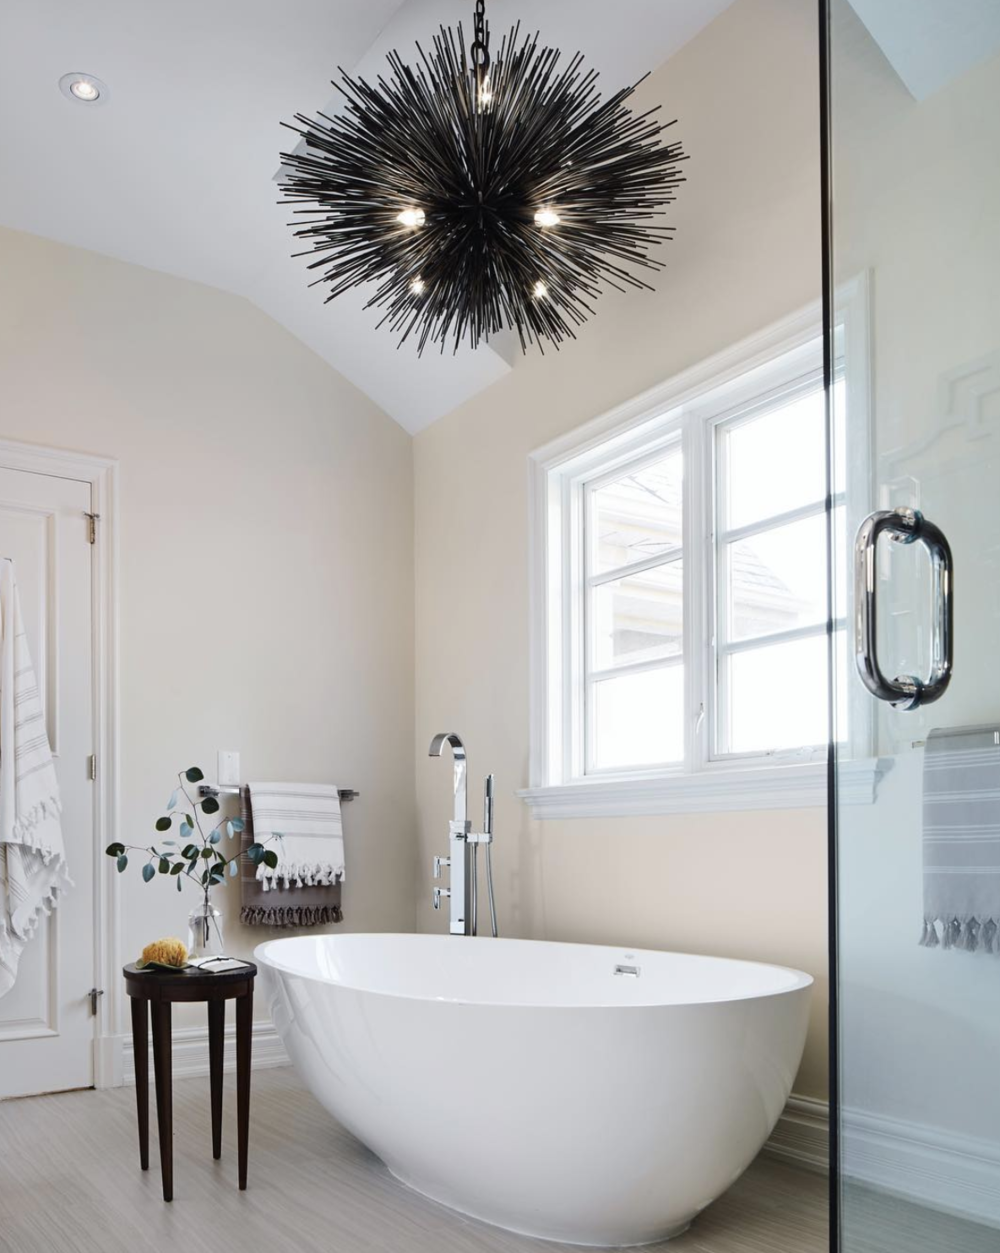 Kelly Wearstler chandelier, interior design by Cynthia Ferguson